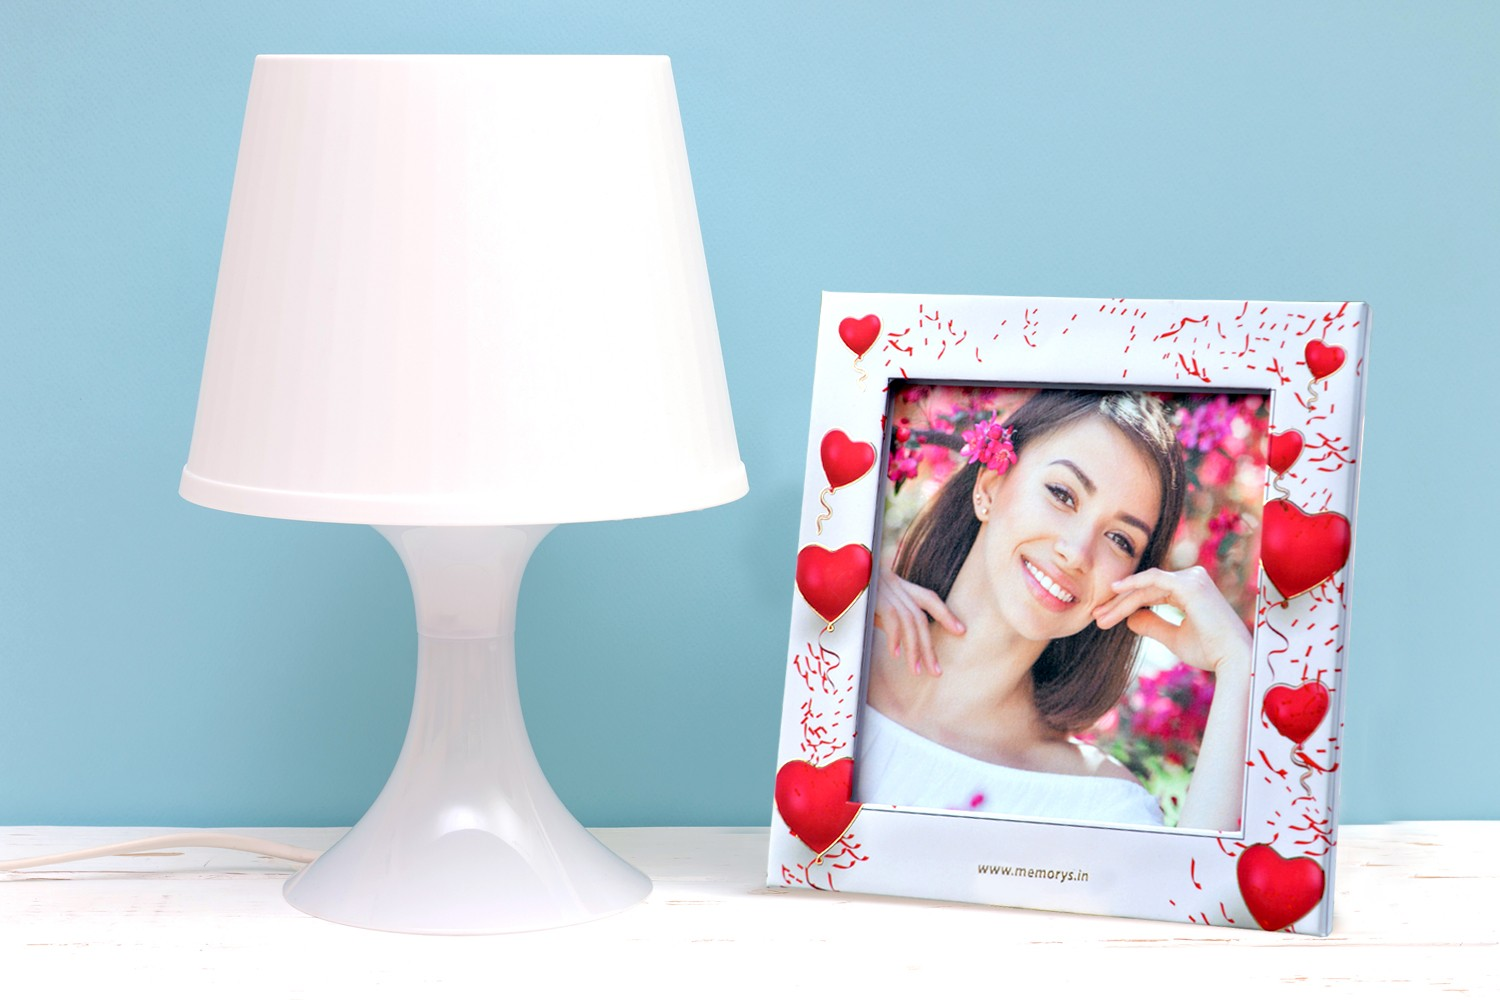 Love in the Air Photo Frame